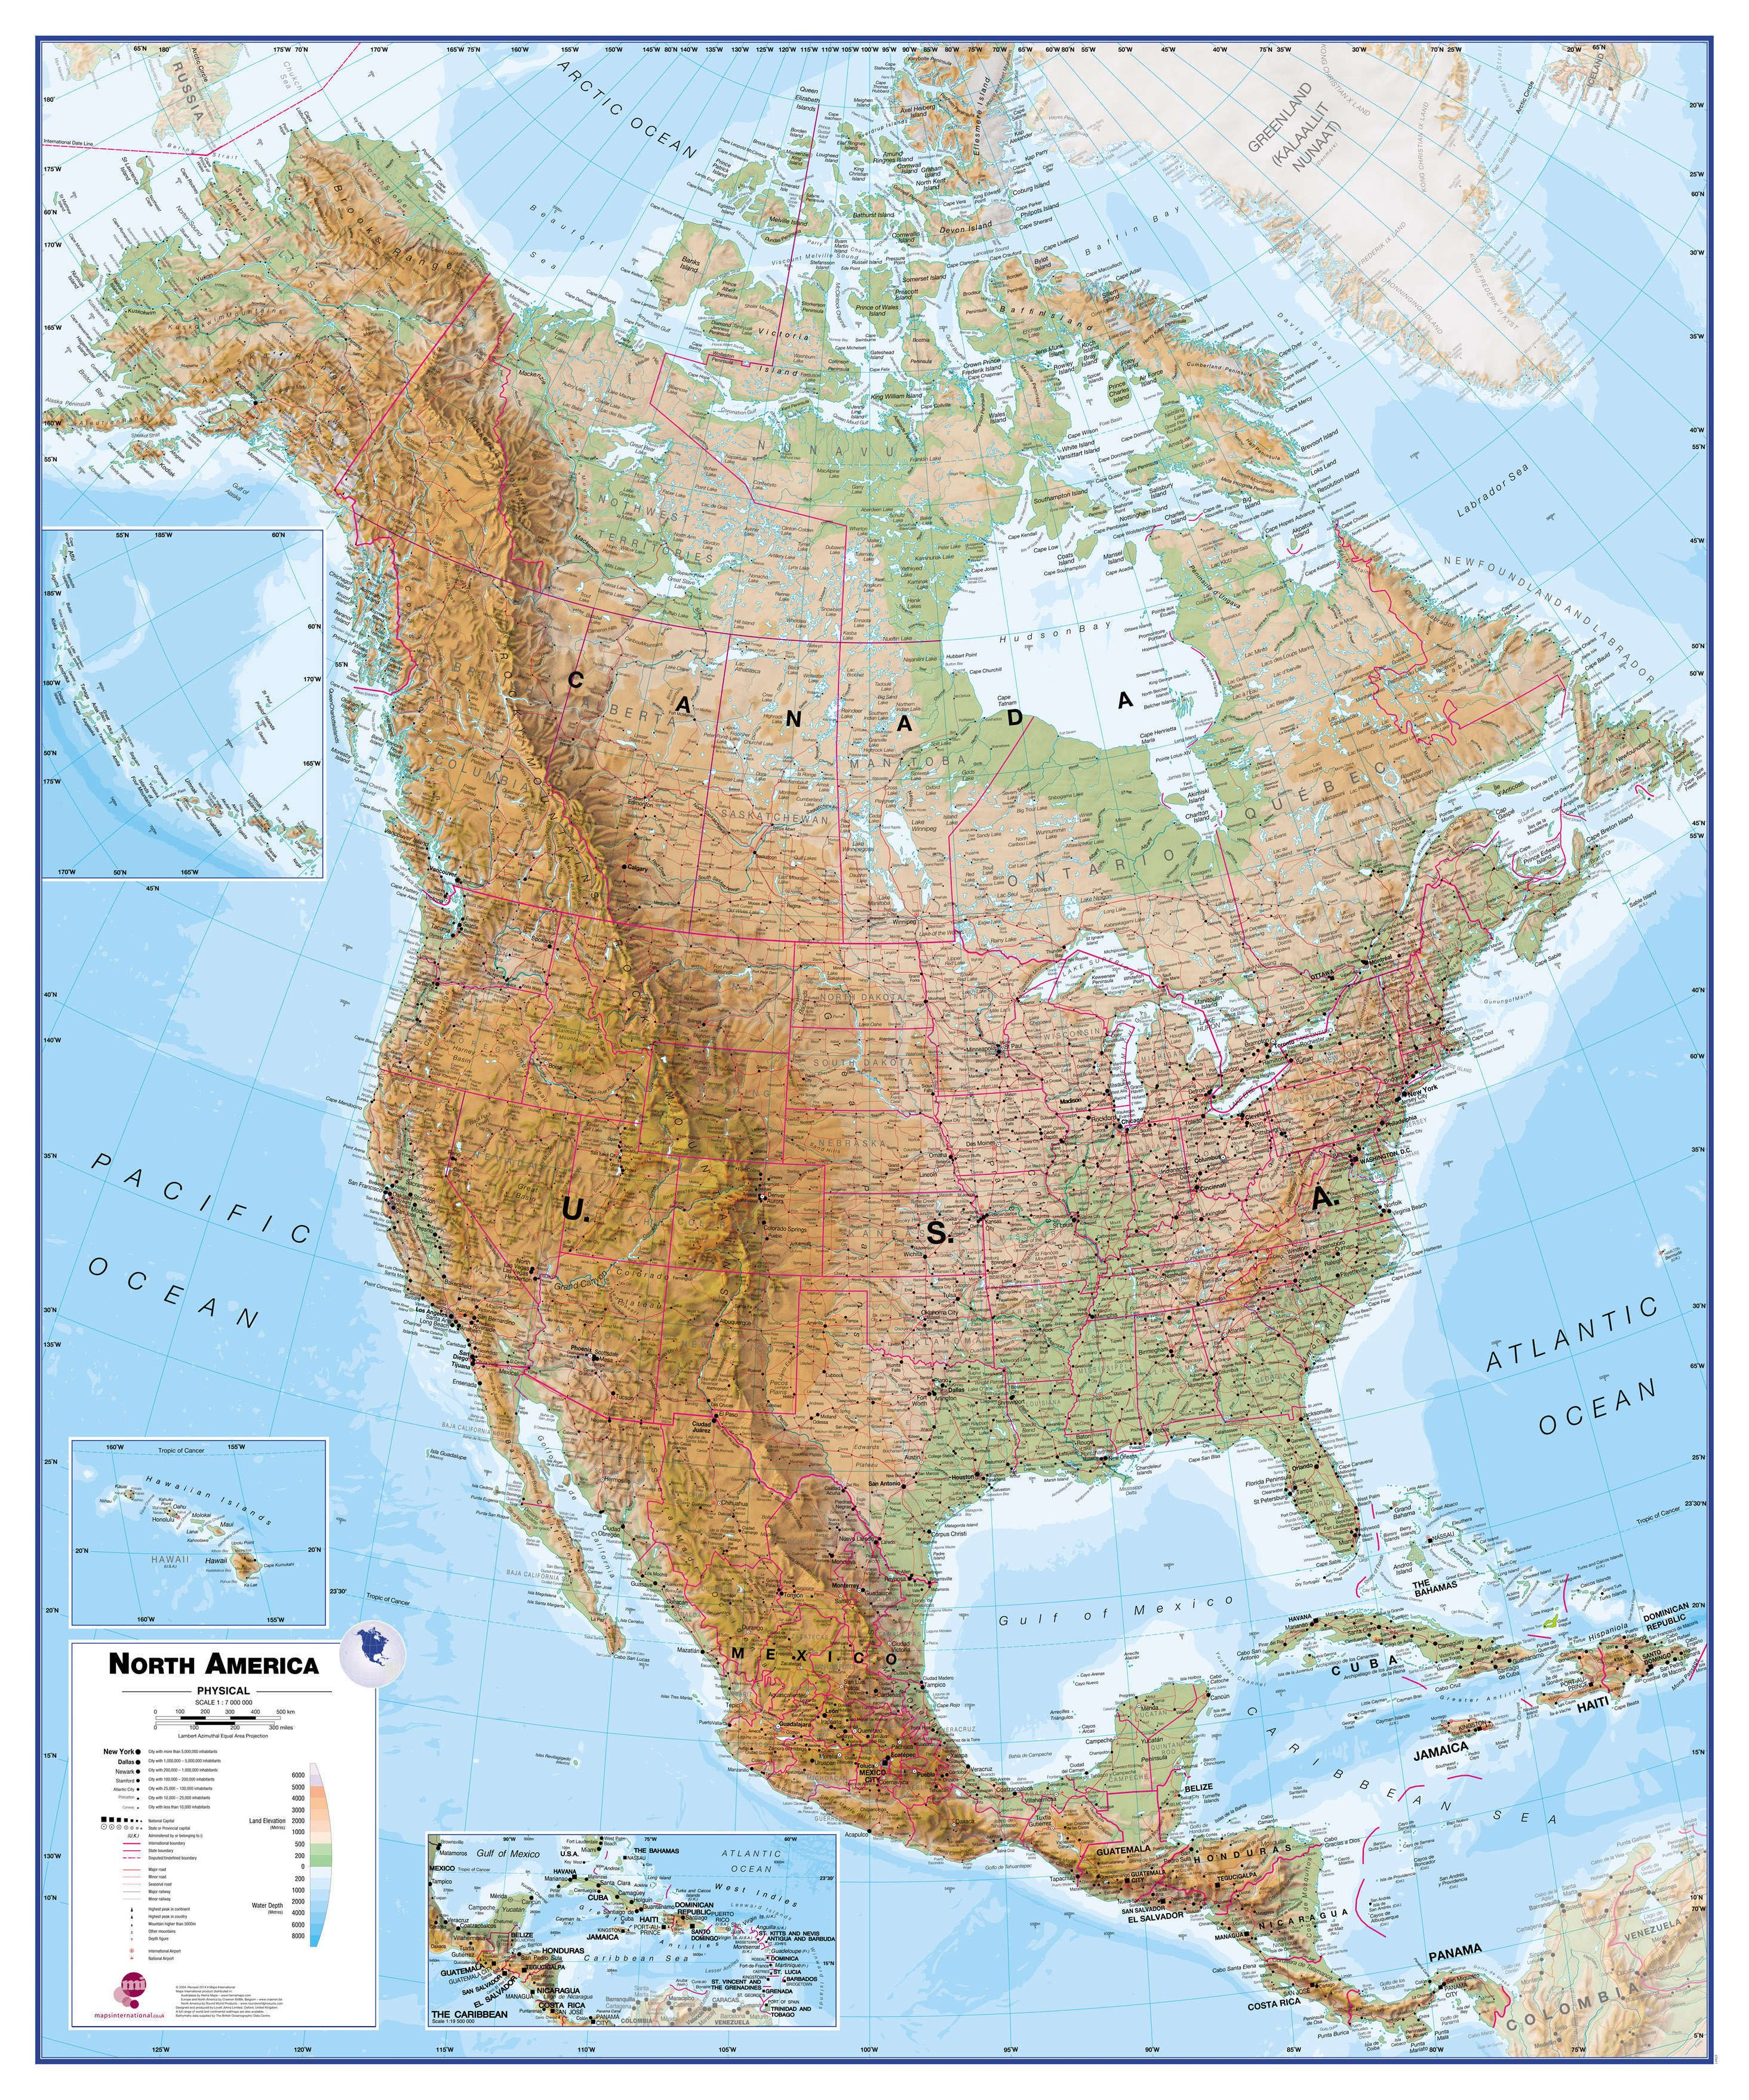 North America Wall Map Physical - North america continent map physical